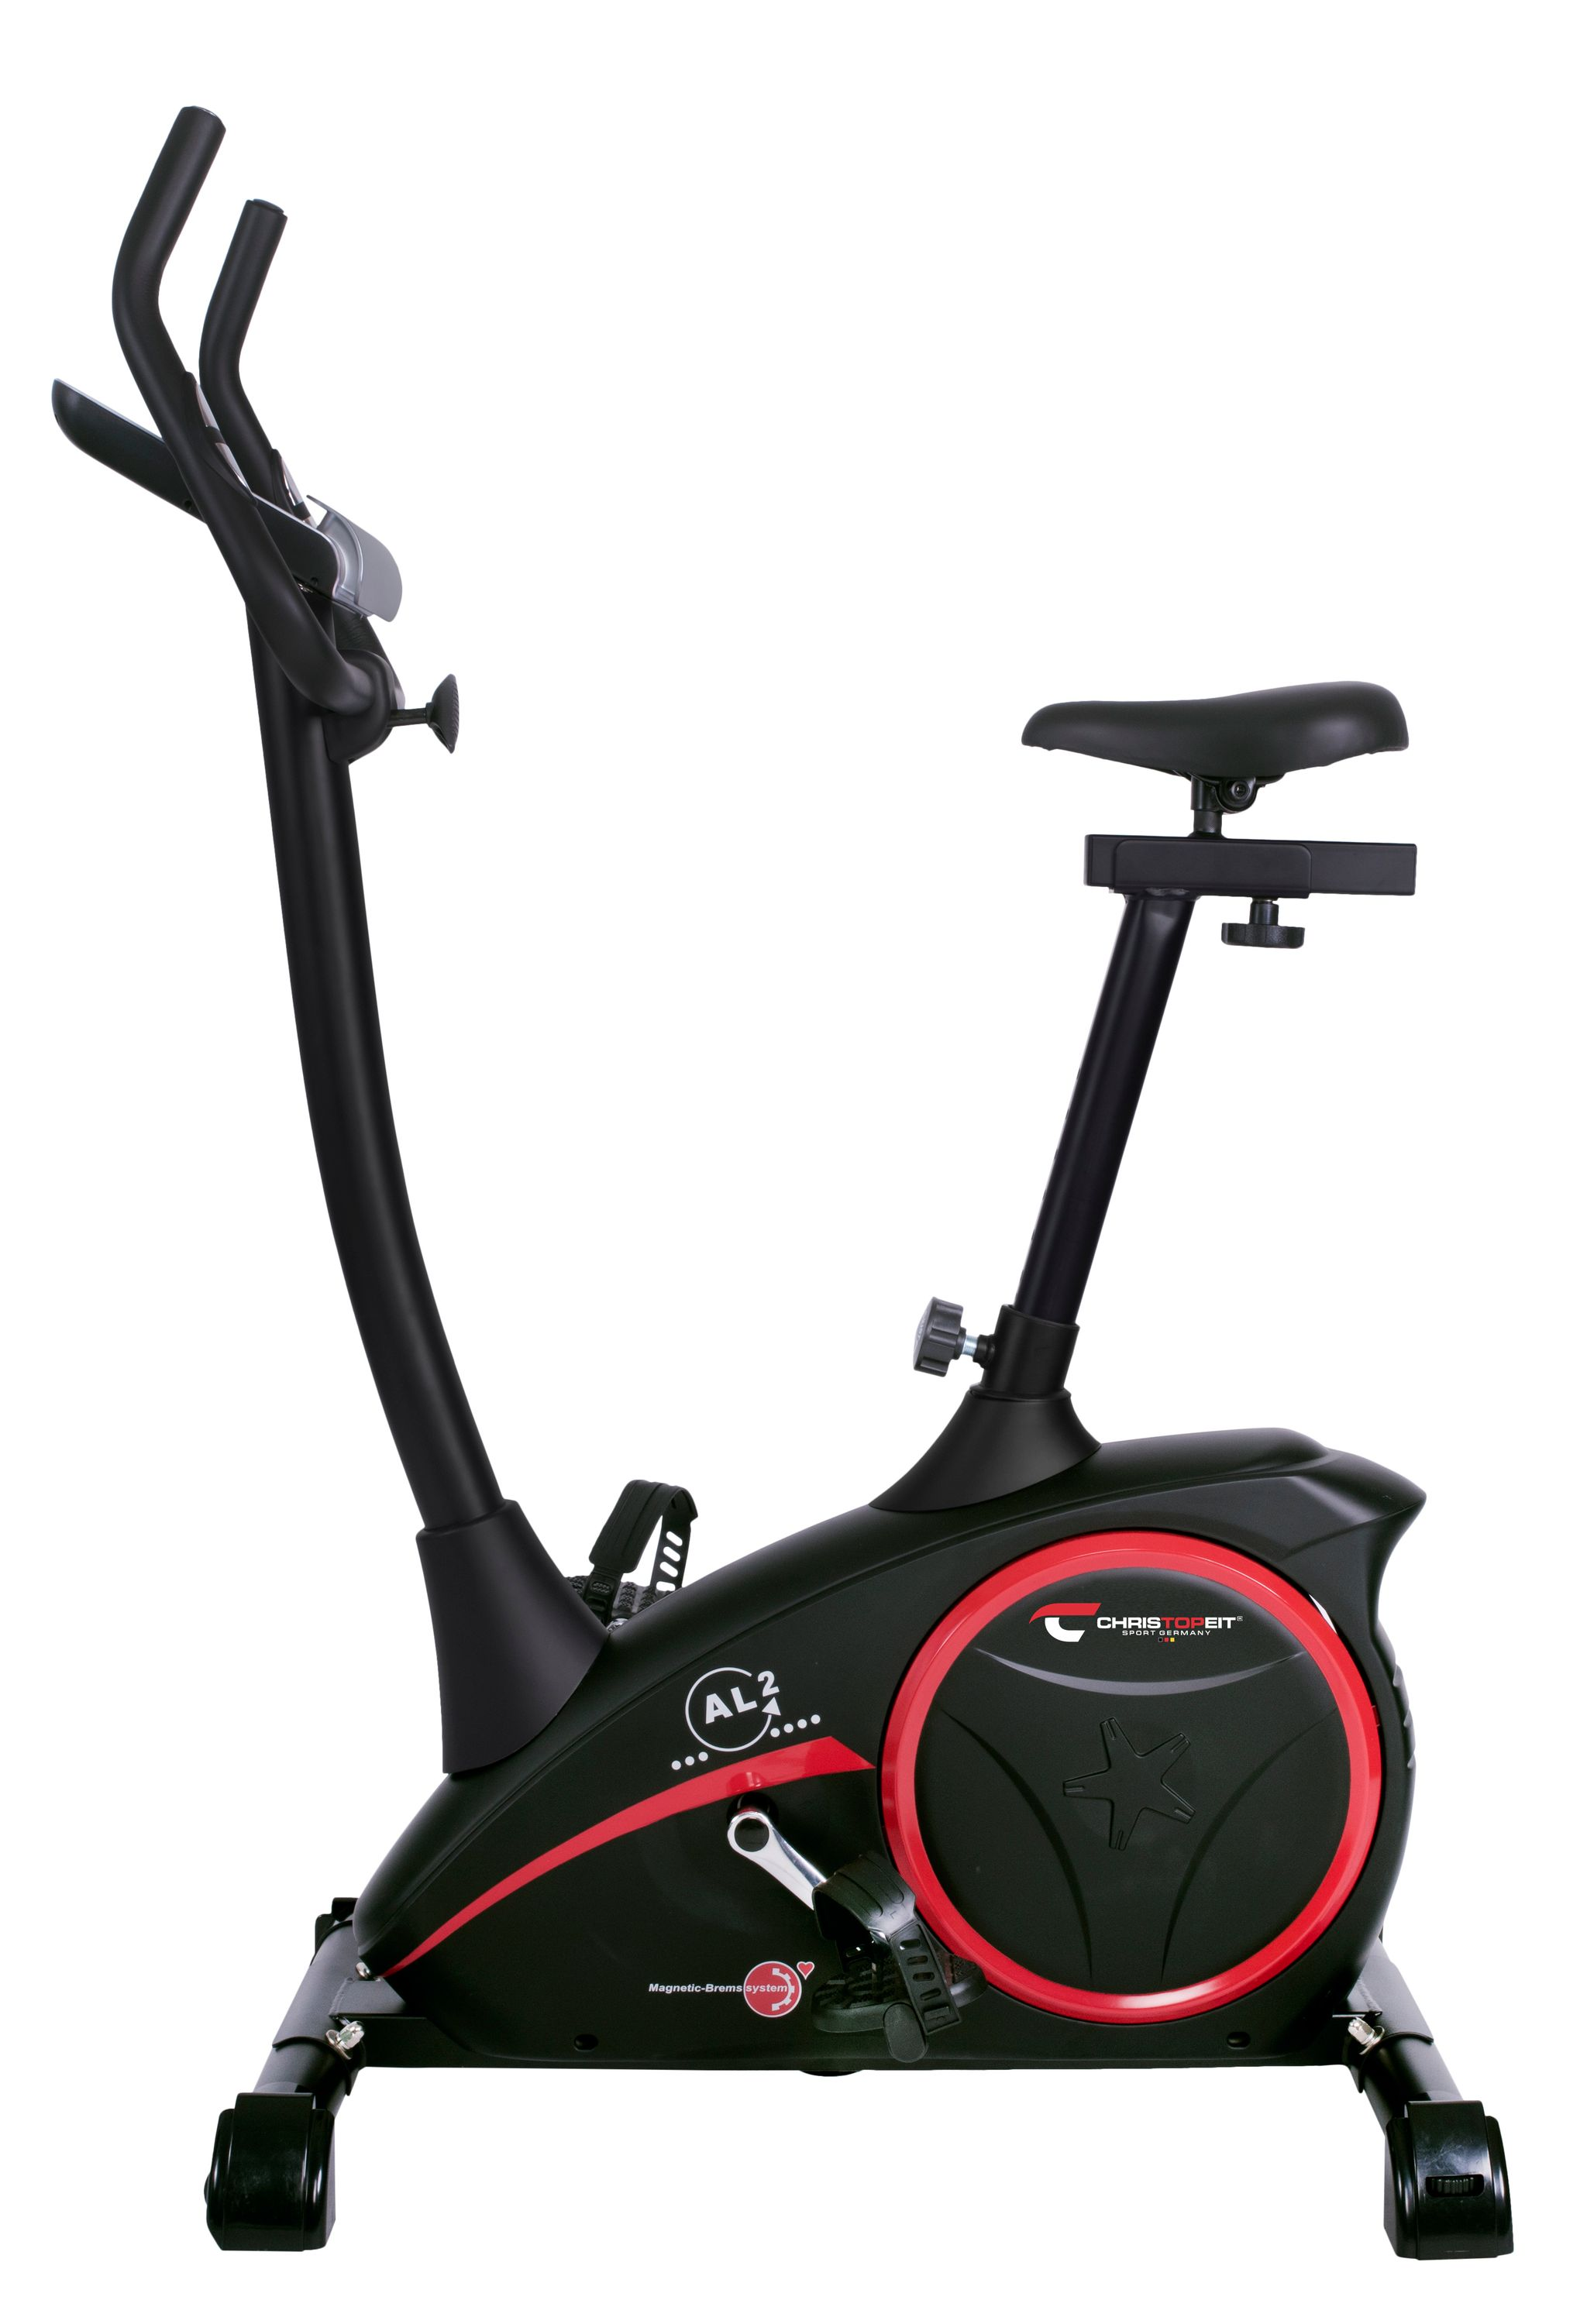 Ergometer AL 2 — Black Edition